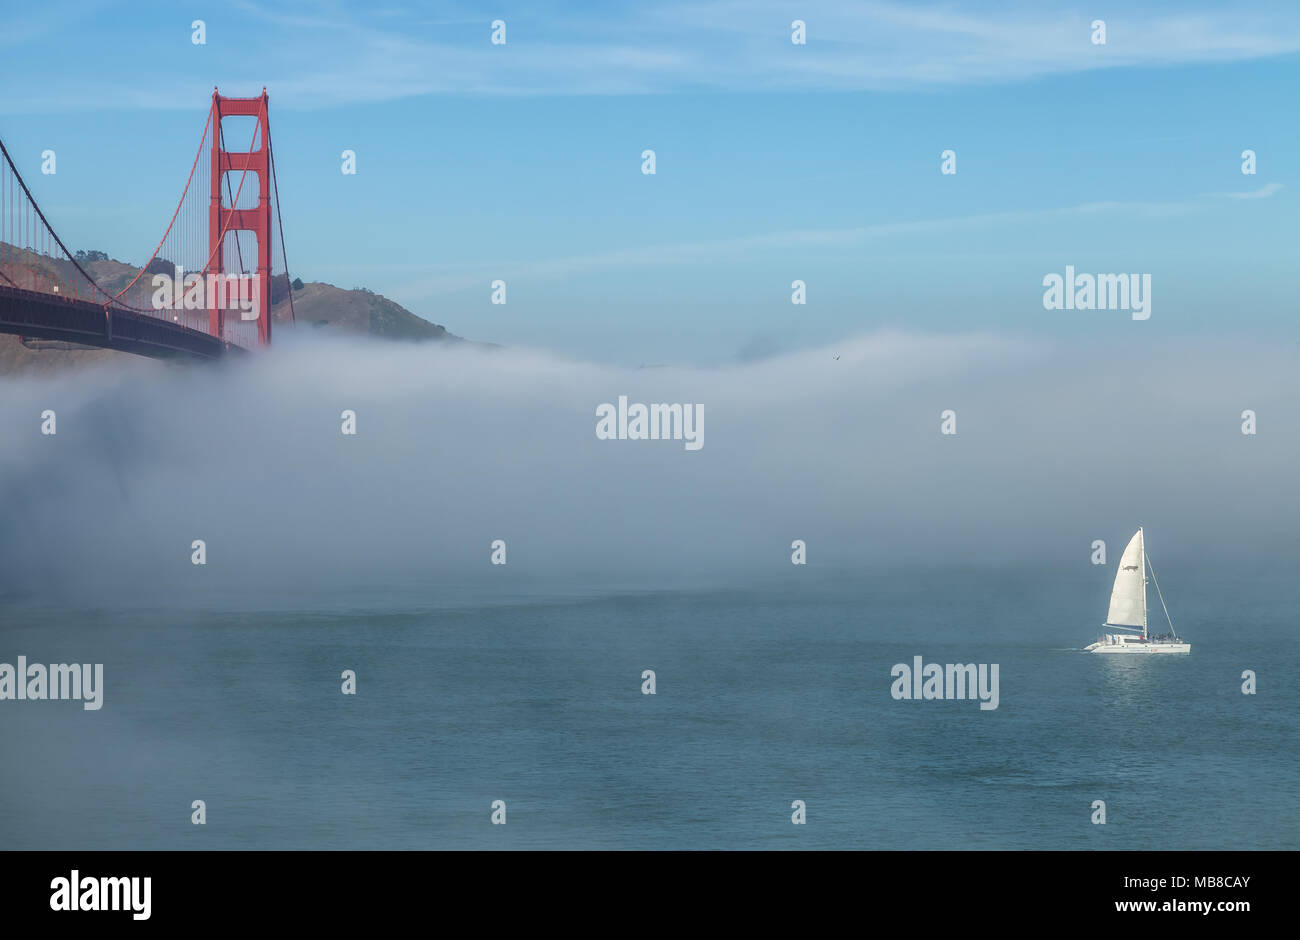 Fog formed under the Golden Gate Bridge and the San Francisco Bay, California, United States, on an early spring morning. Stock Photo